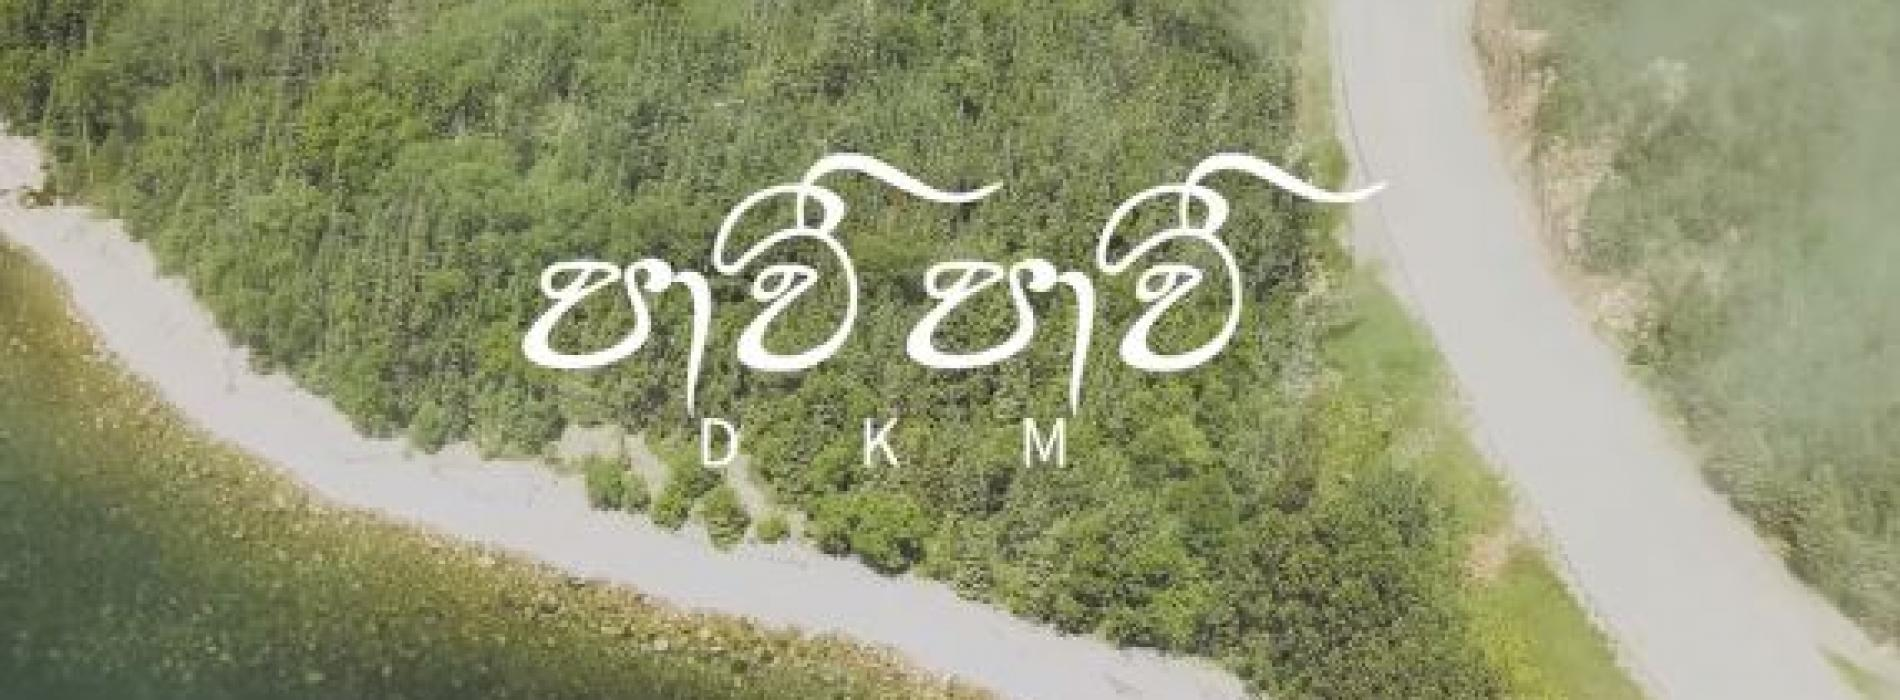 New Music : DKM – Pawee Pawee (පාවී පාවී) Produced by Kollins